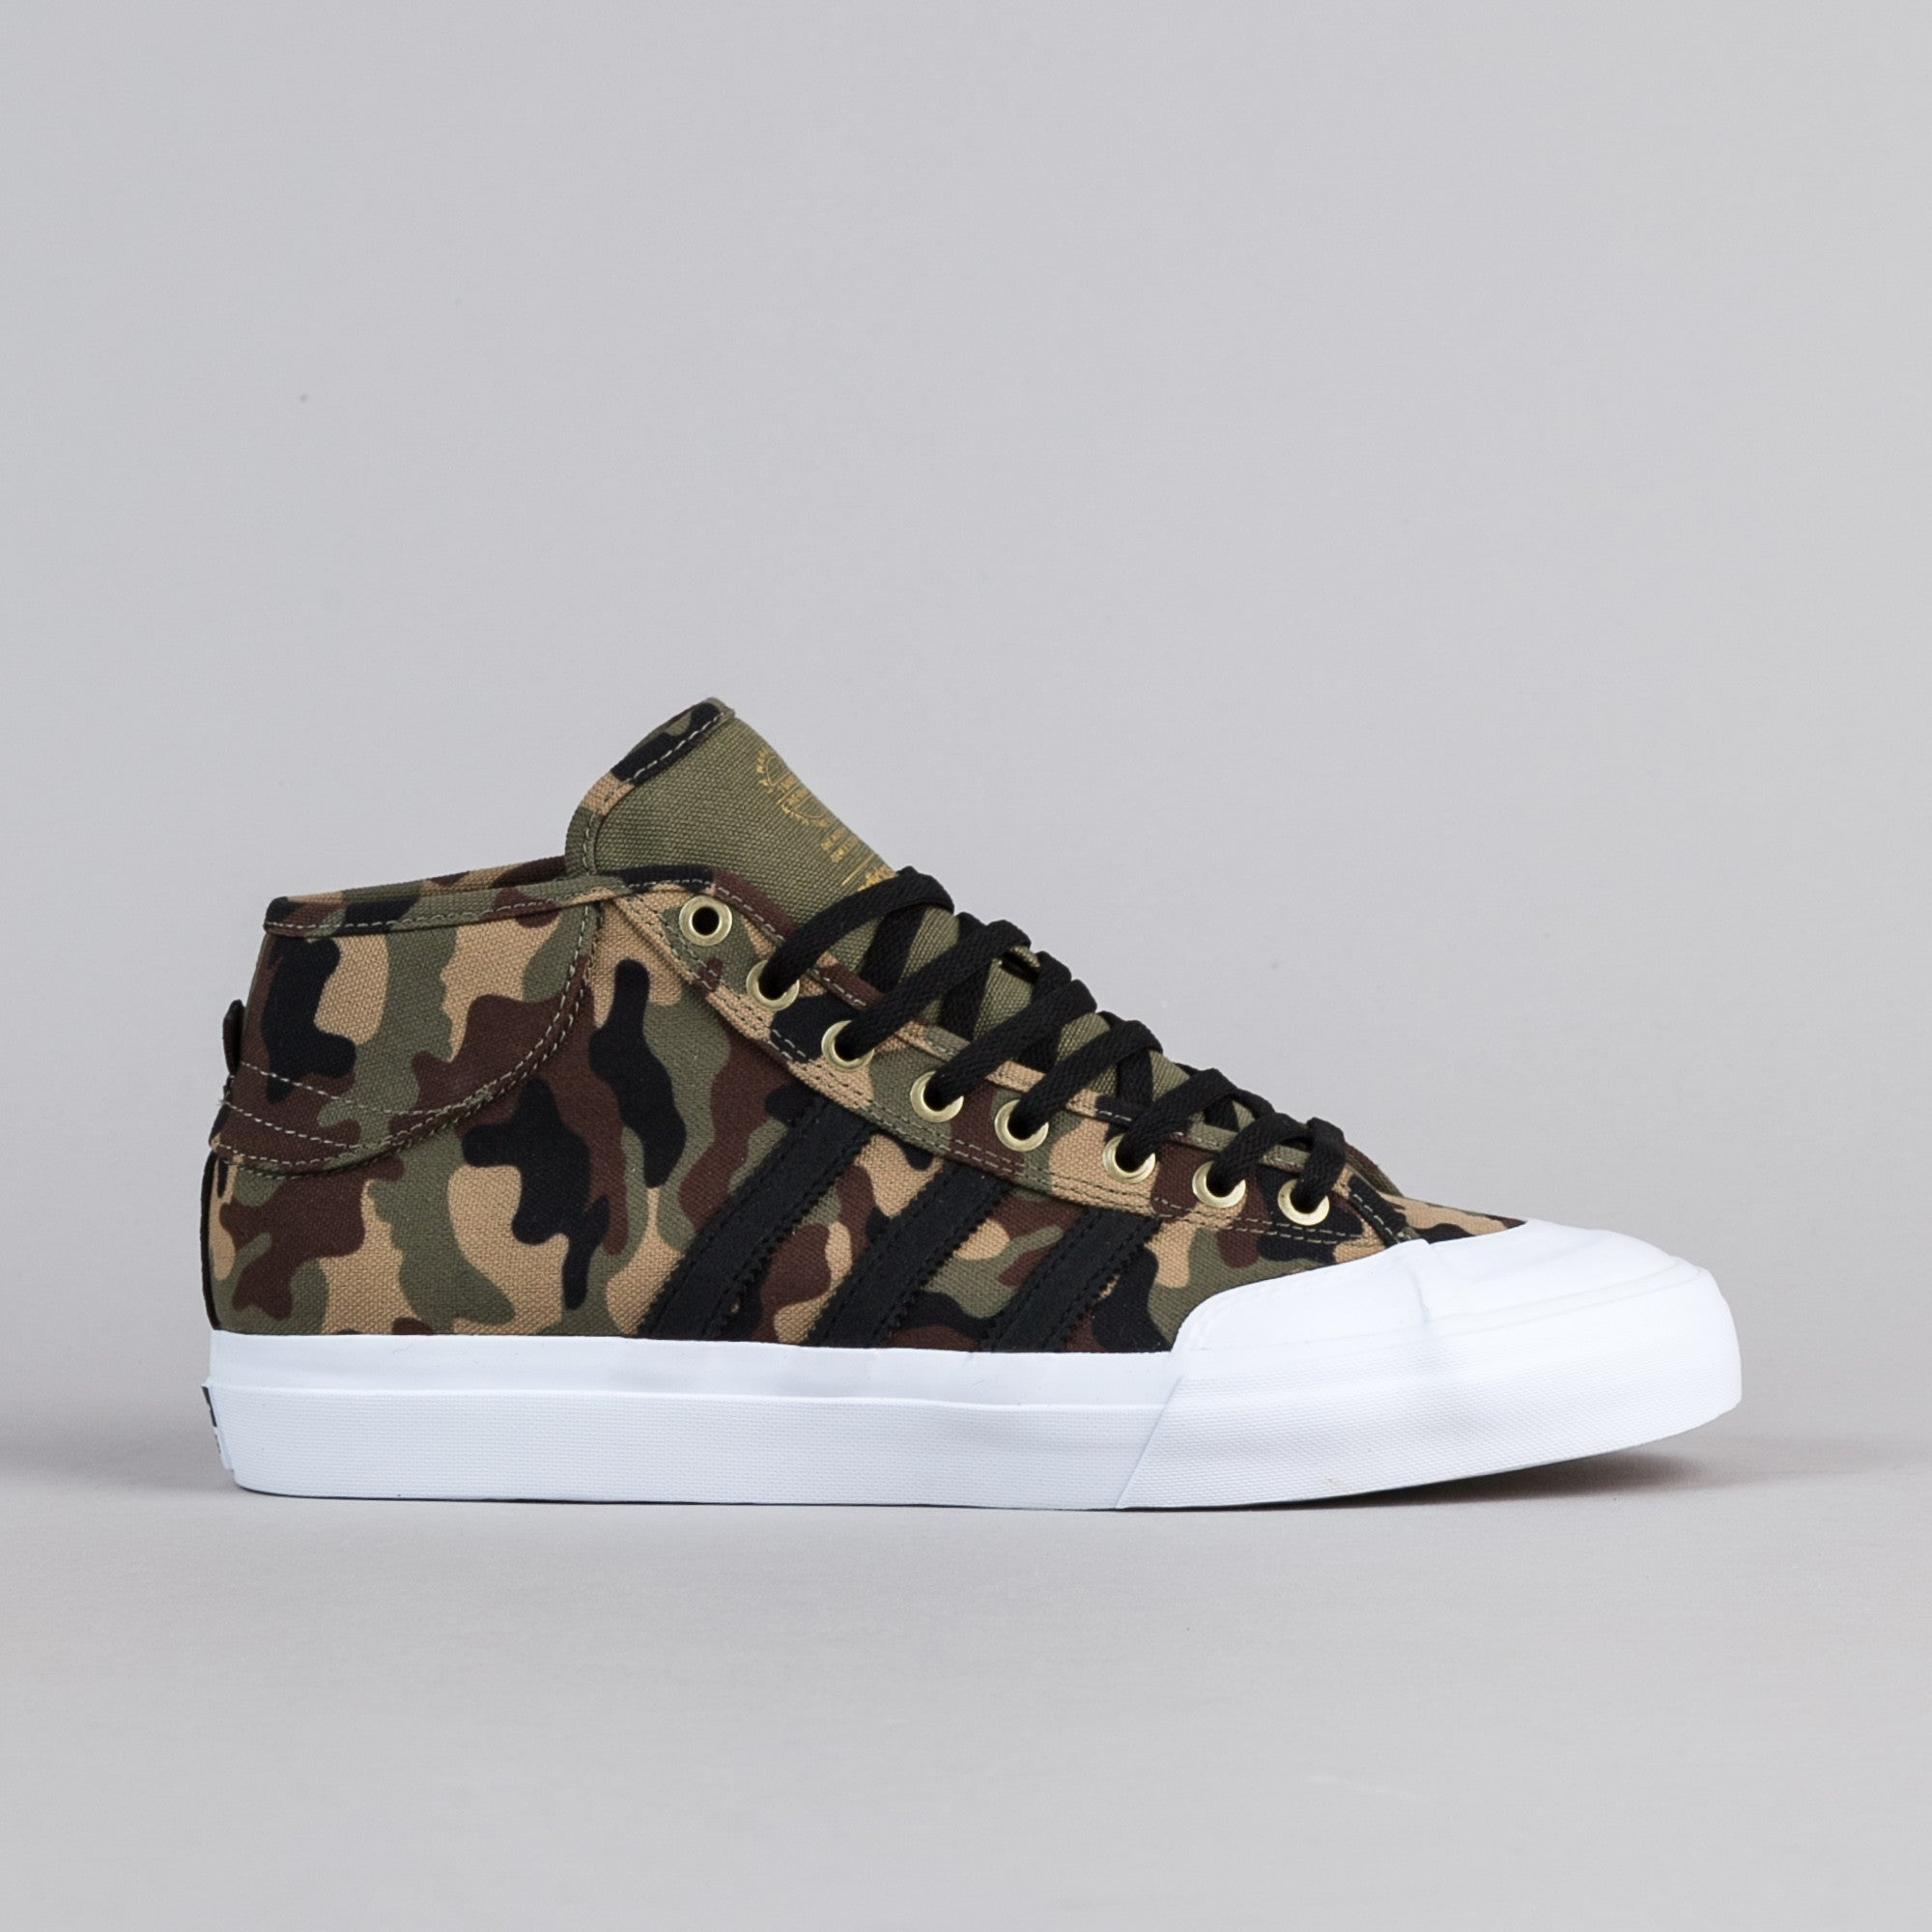 Adidas Matchcourt Mid ADV Shoes - Tent Green / Core Black / White